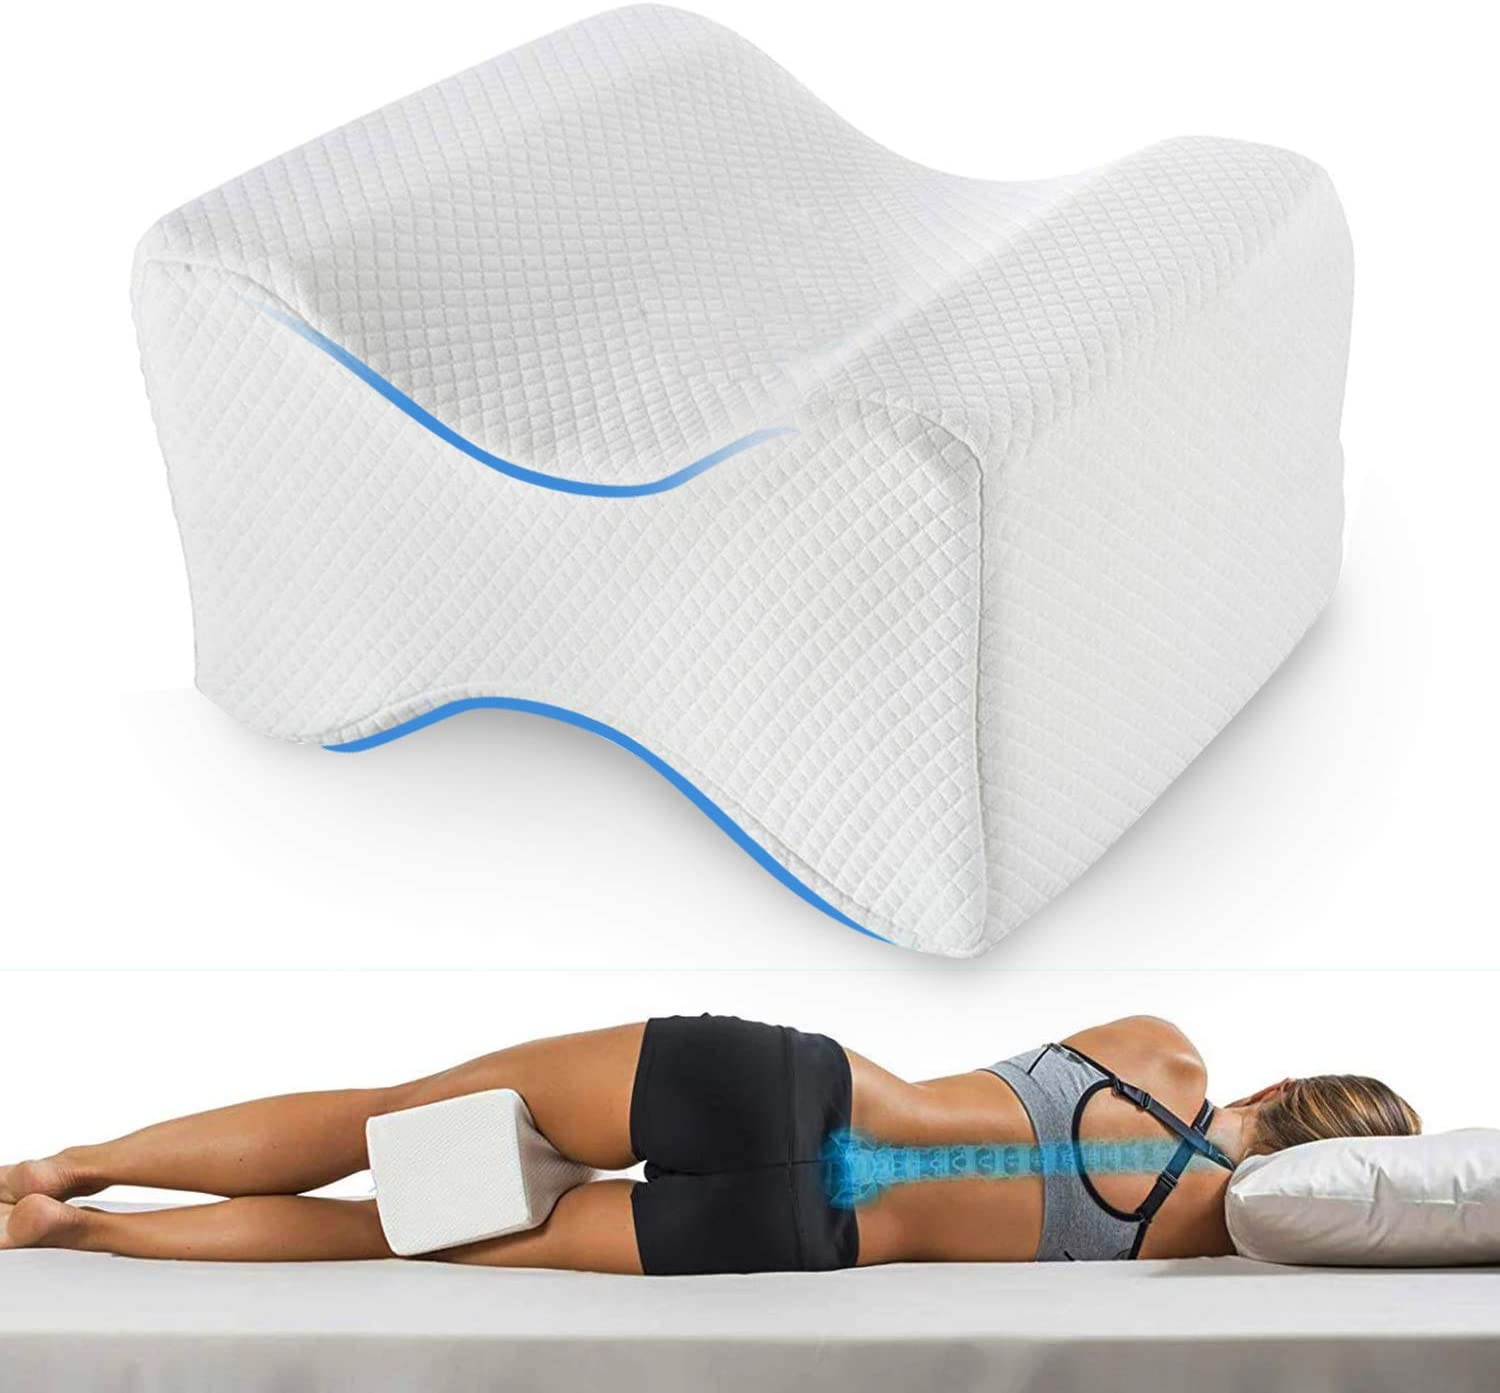 SRXWO Knee Pillow for Side Sleepers